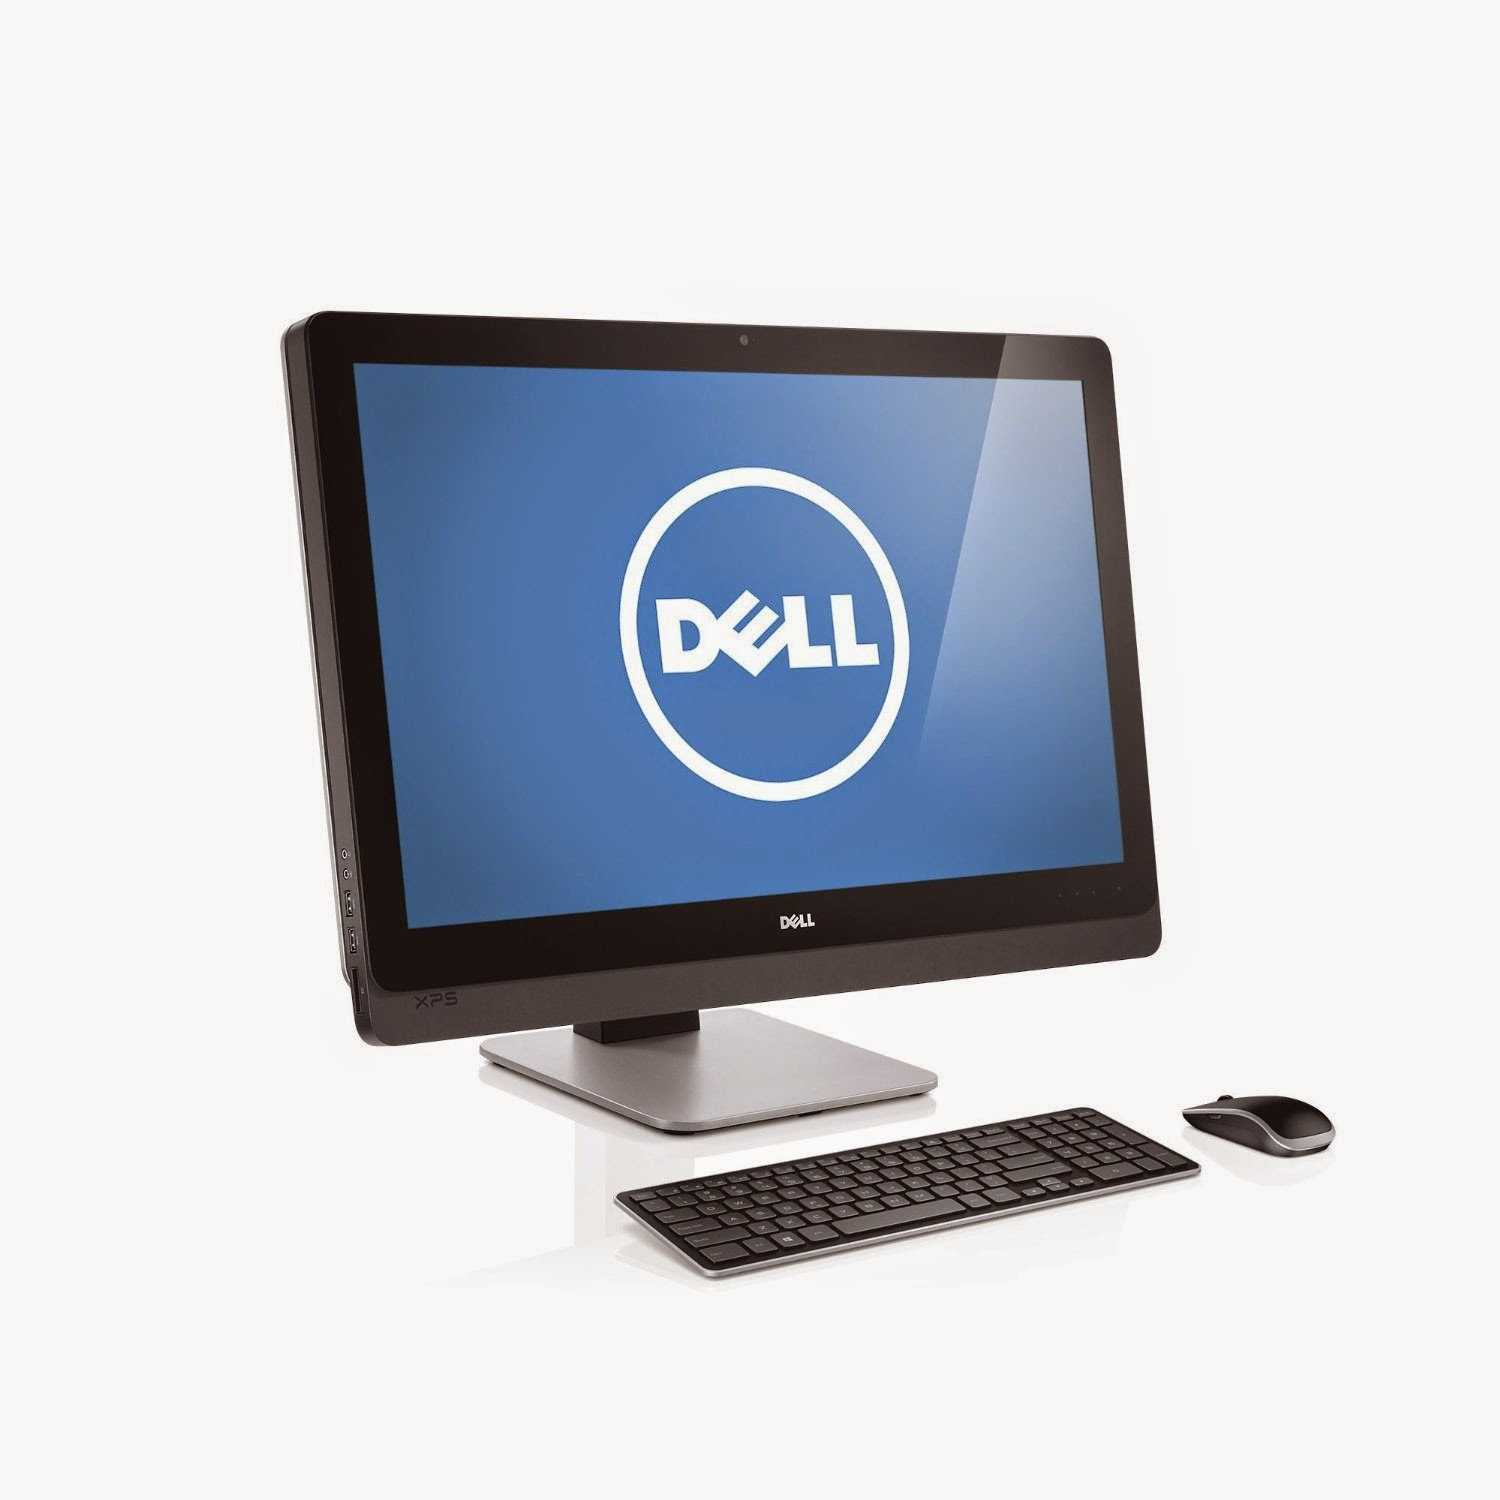 Dell XPS XPSo27-3571BLK 27-inci Touchscreen Desktop